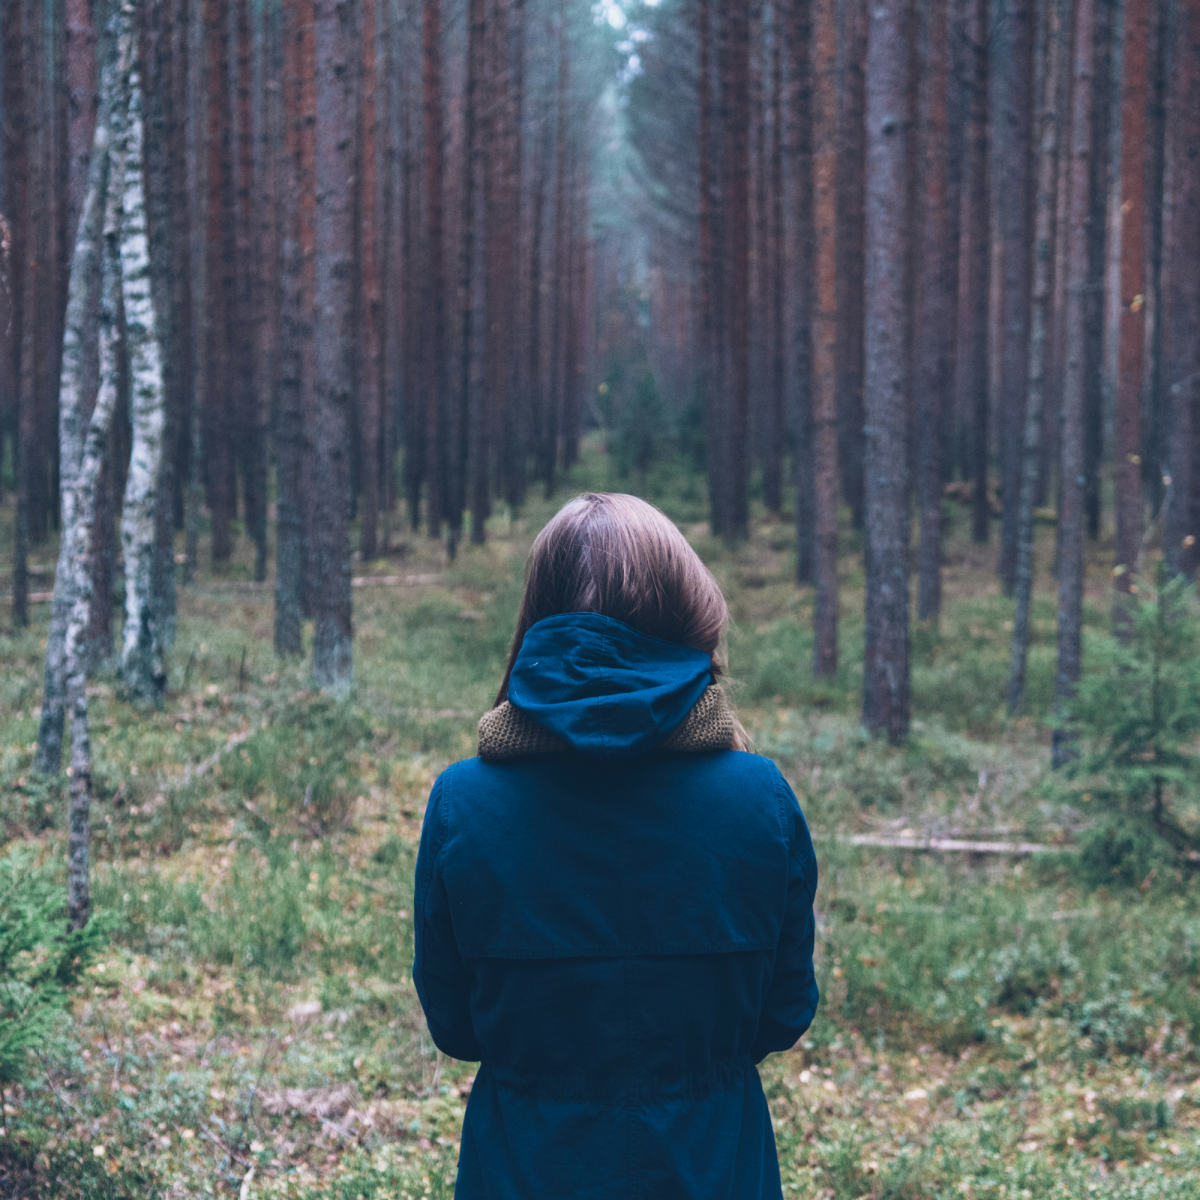 forest bathing trend, trend for wellness, wellness trend, mindfulness trend, nature, japanese forest bathing, shinrin-yoku, forest bathing therapy